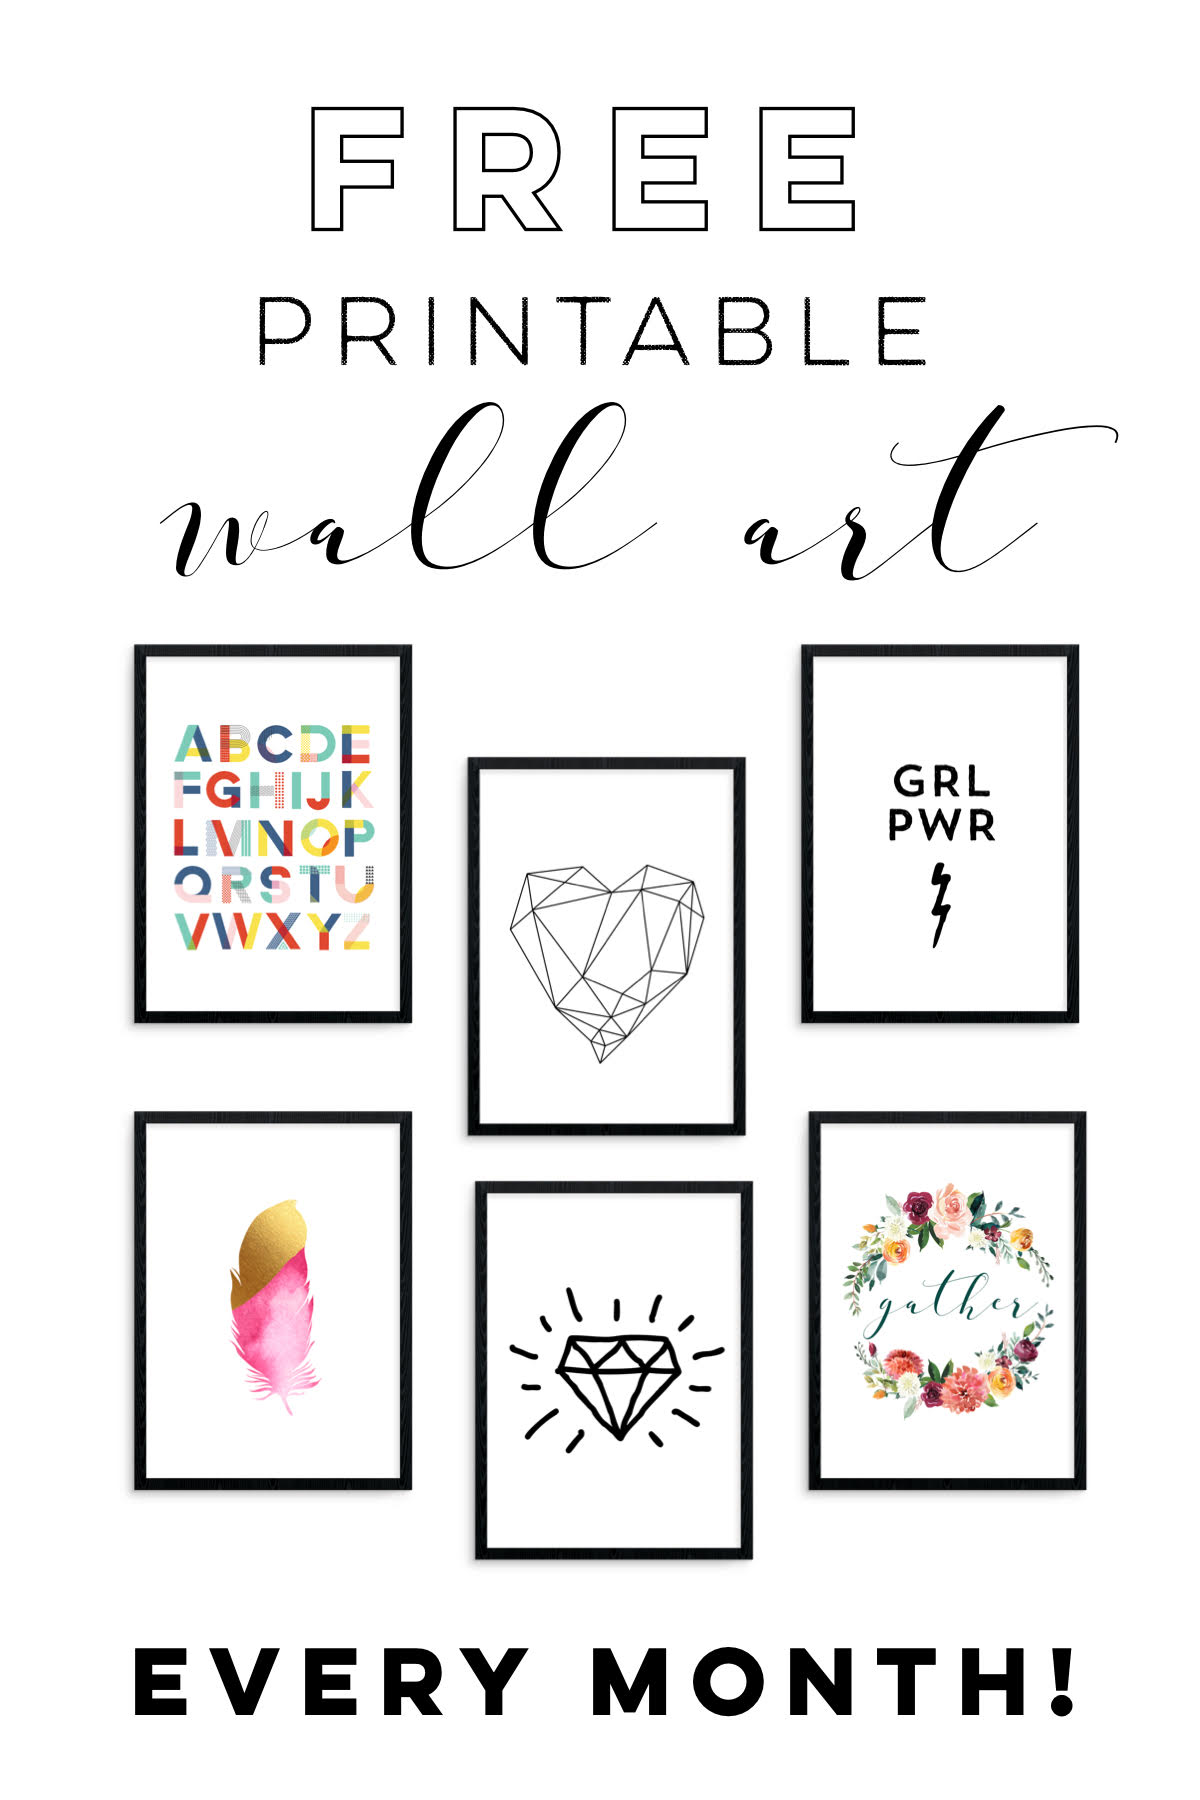 Faqs About Printable Decor And The Monthly Free Printable